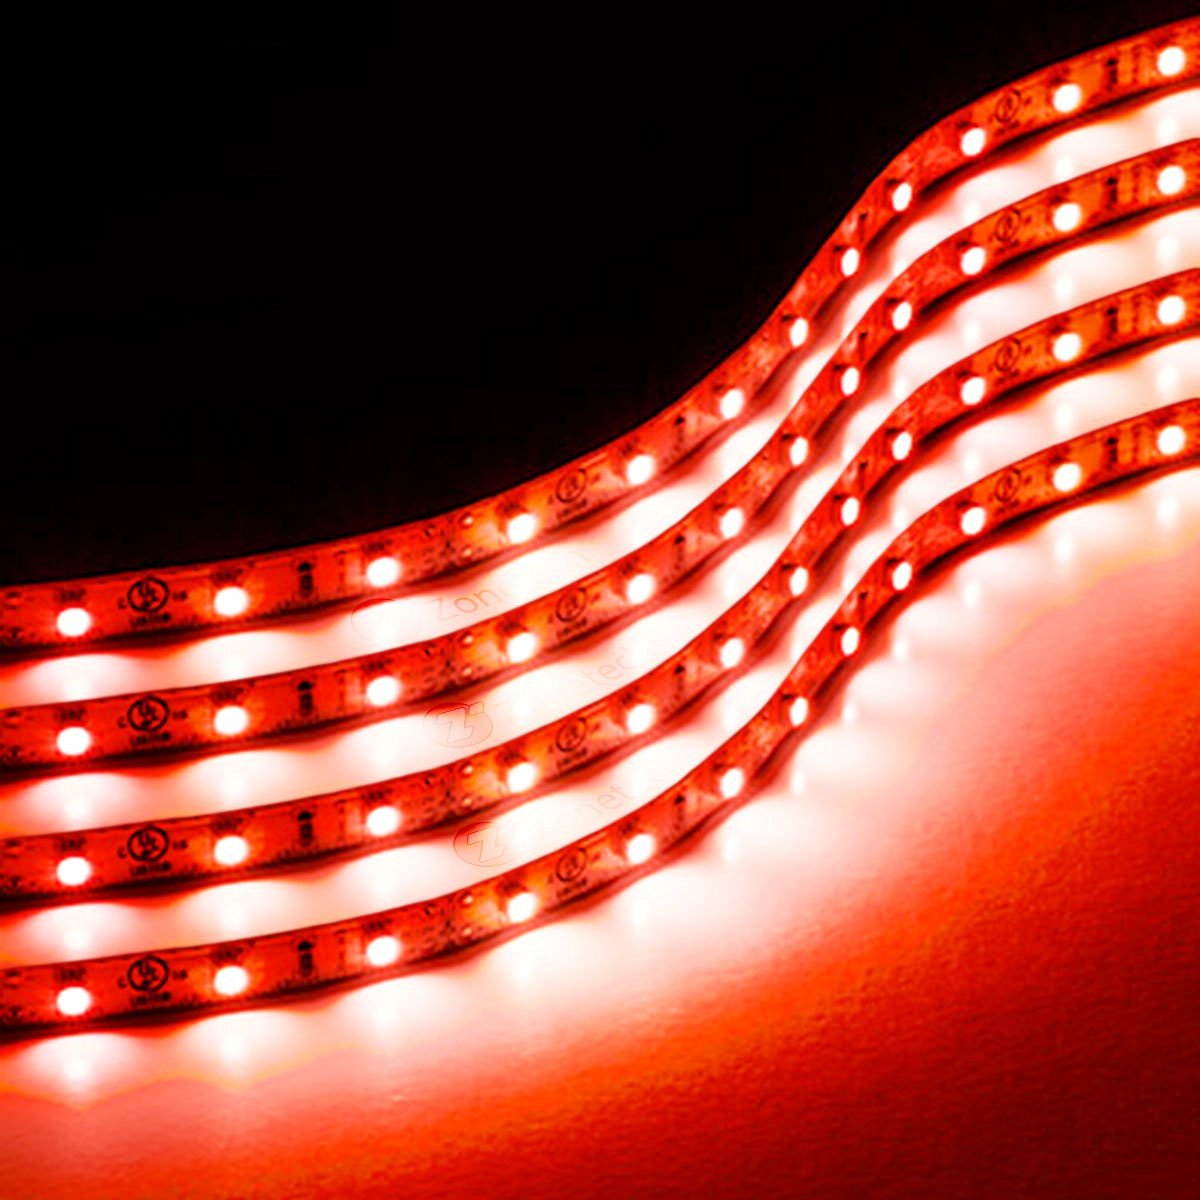 Cheap 12 volt red led light strips find 12 volt red led light zone tech 30cm flexible waterproof red light strips 4 pack led car flexible waterproof red mozeypictures Choice Image